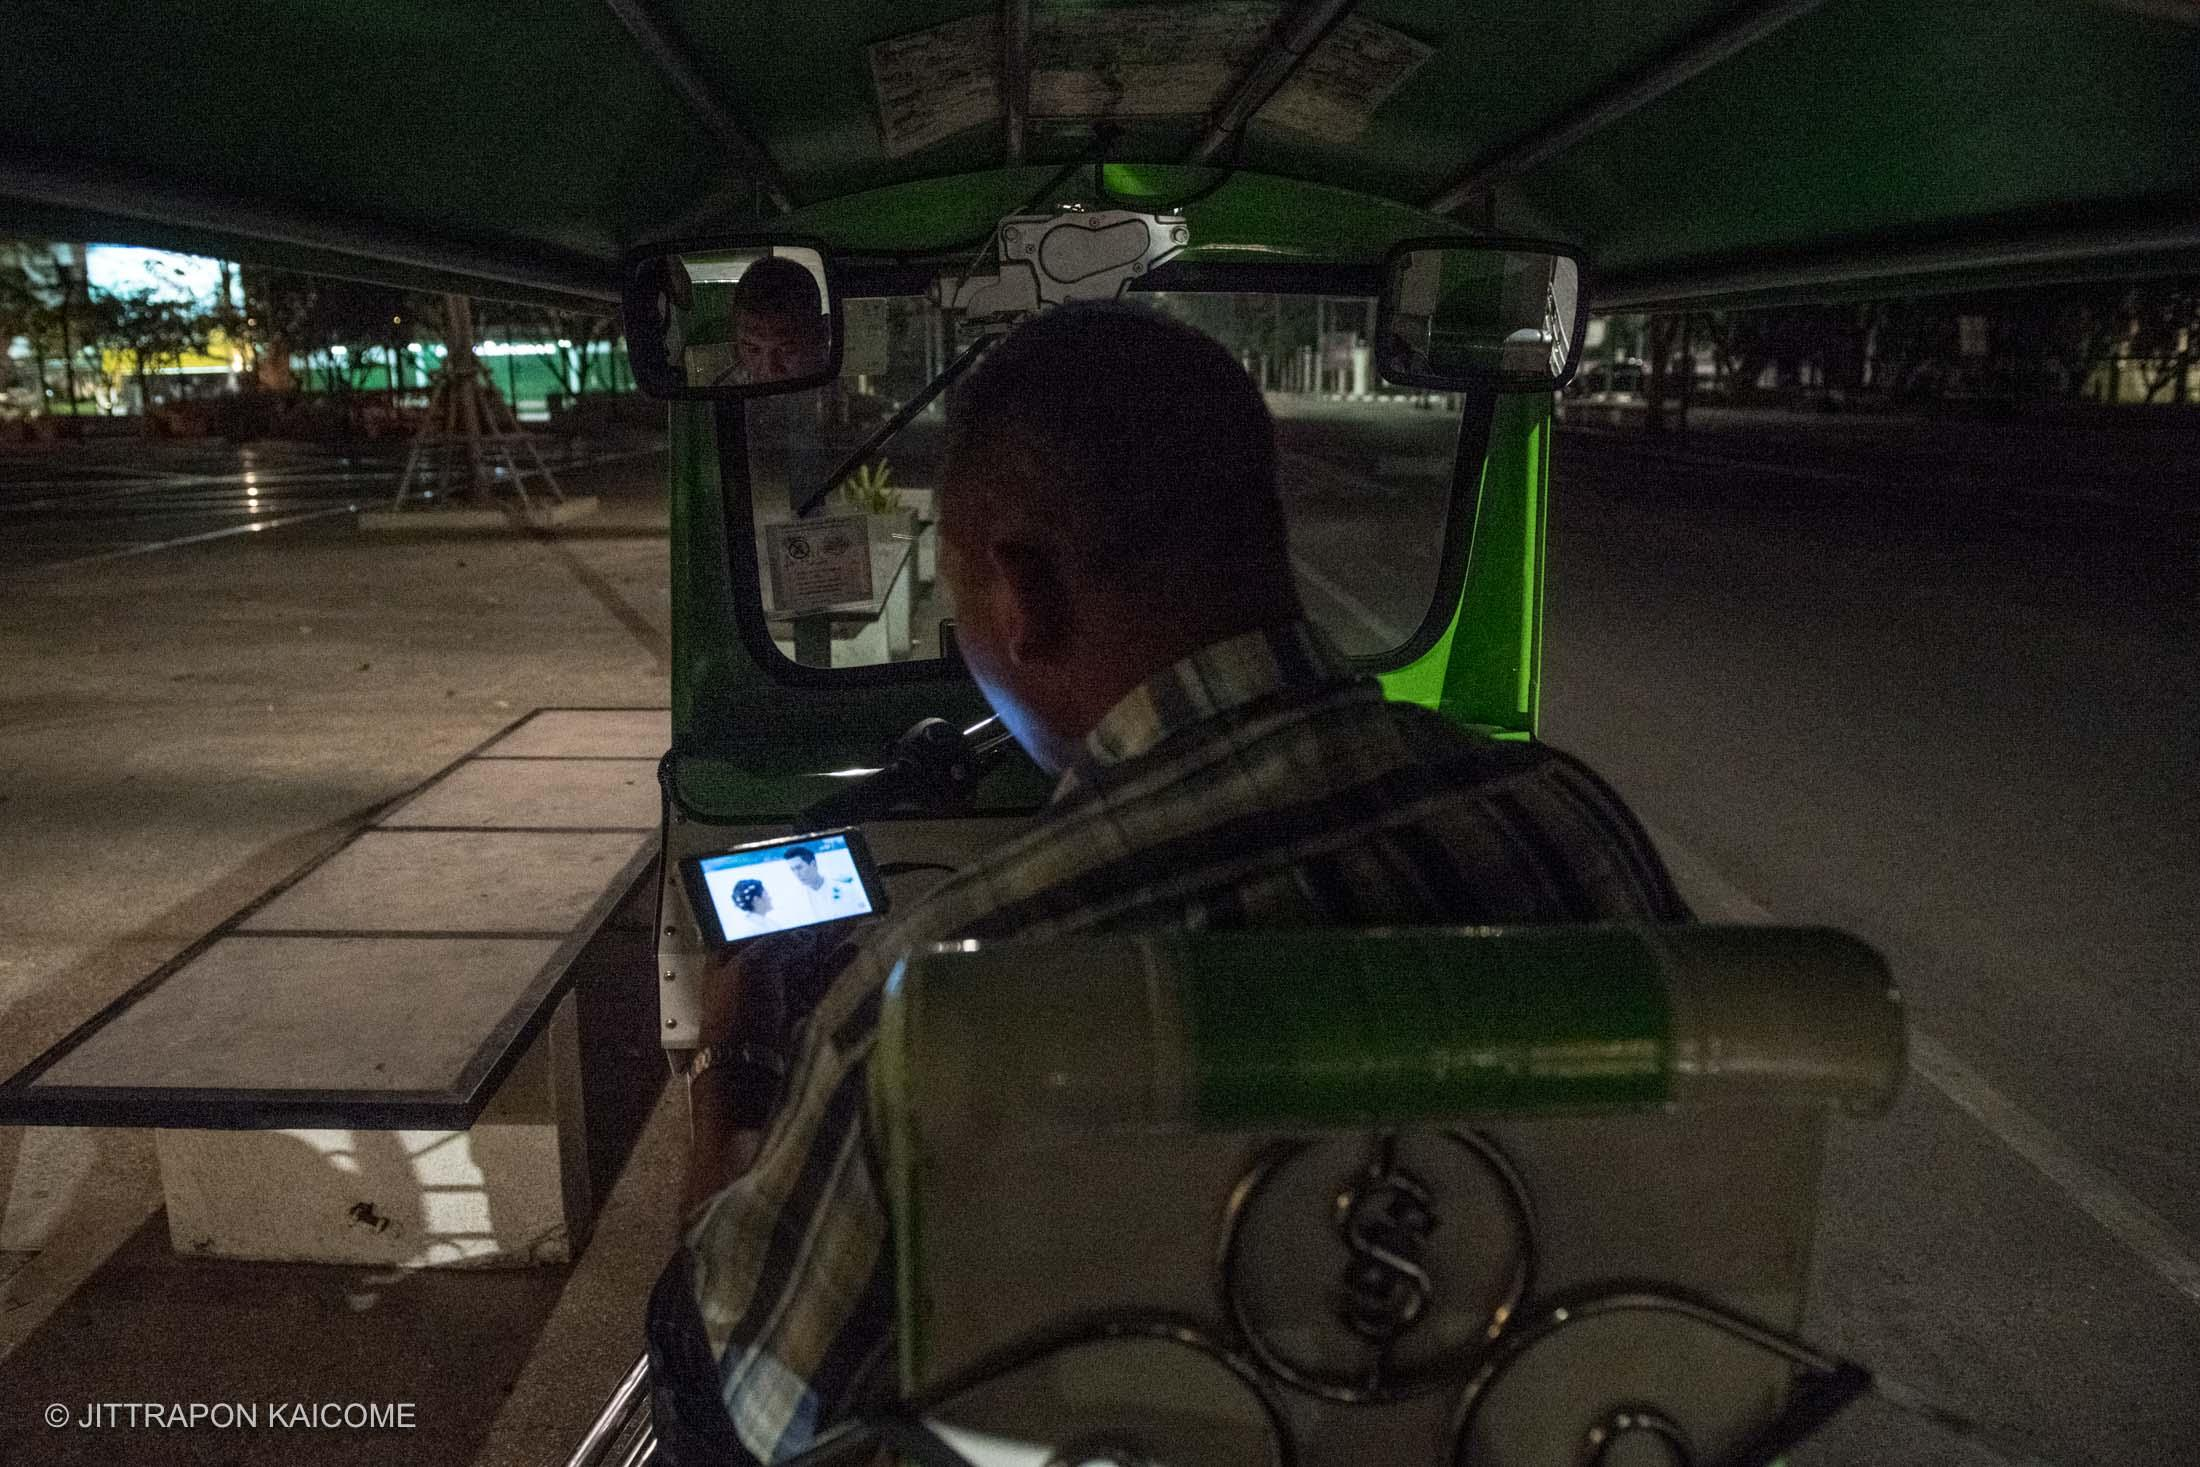 07.42 PM - Empty streets at tourist hot spot, a Tuk Tuk driver is waiting for customers. If he is lucky, he could earn some money for the day, Chiang Mai, Thailand in March 23, 2020.